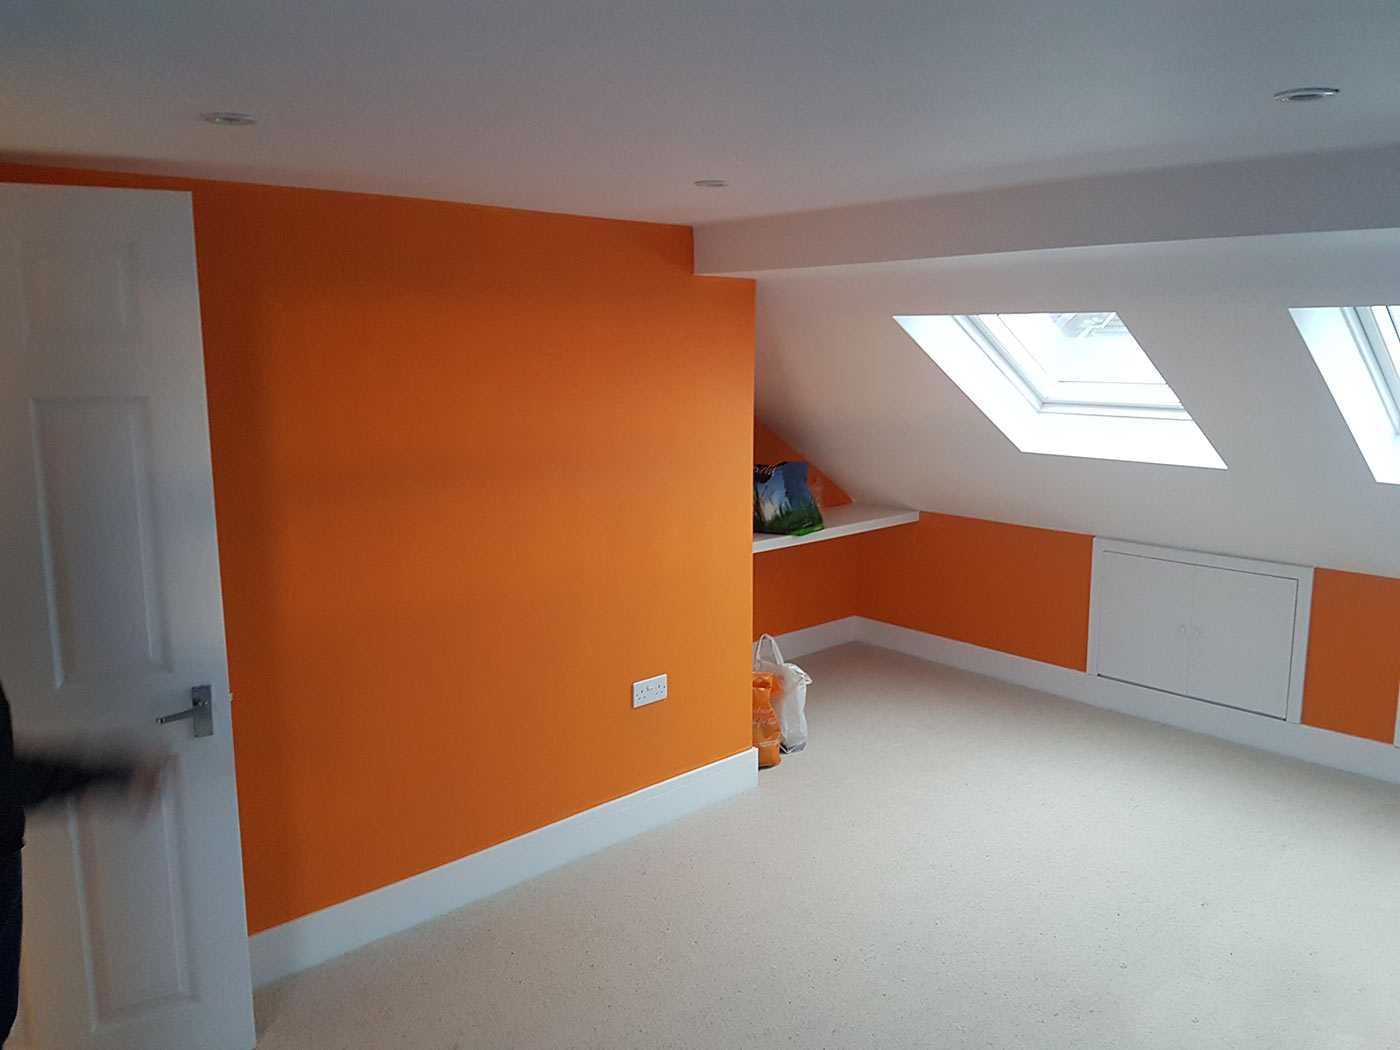 Loft-extension-orange-interior-2